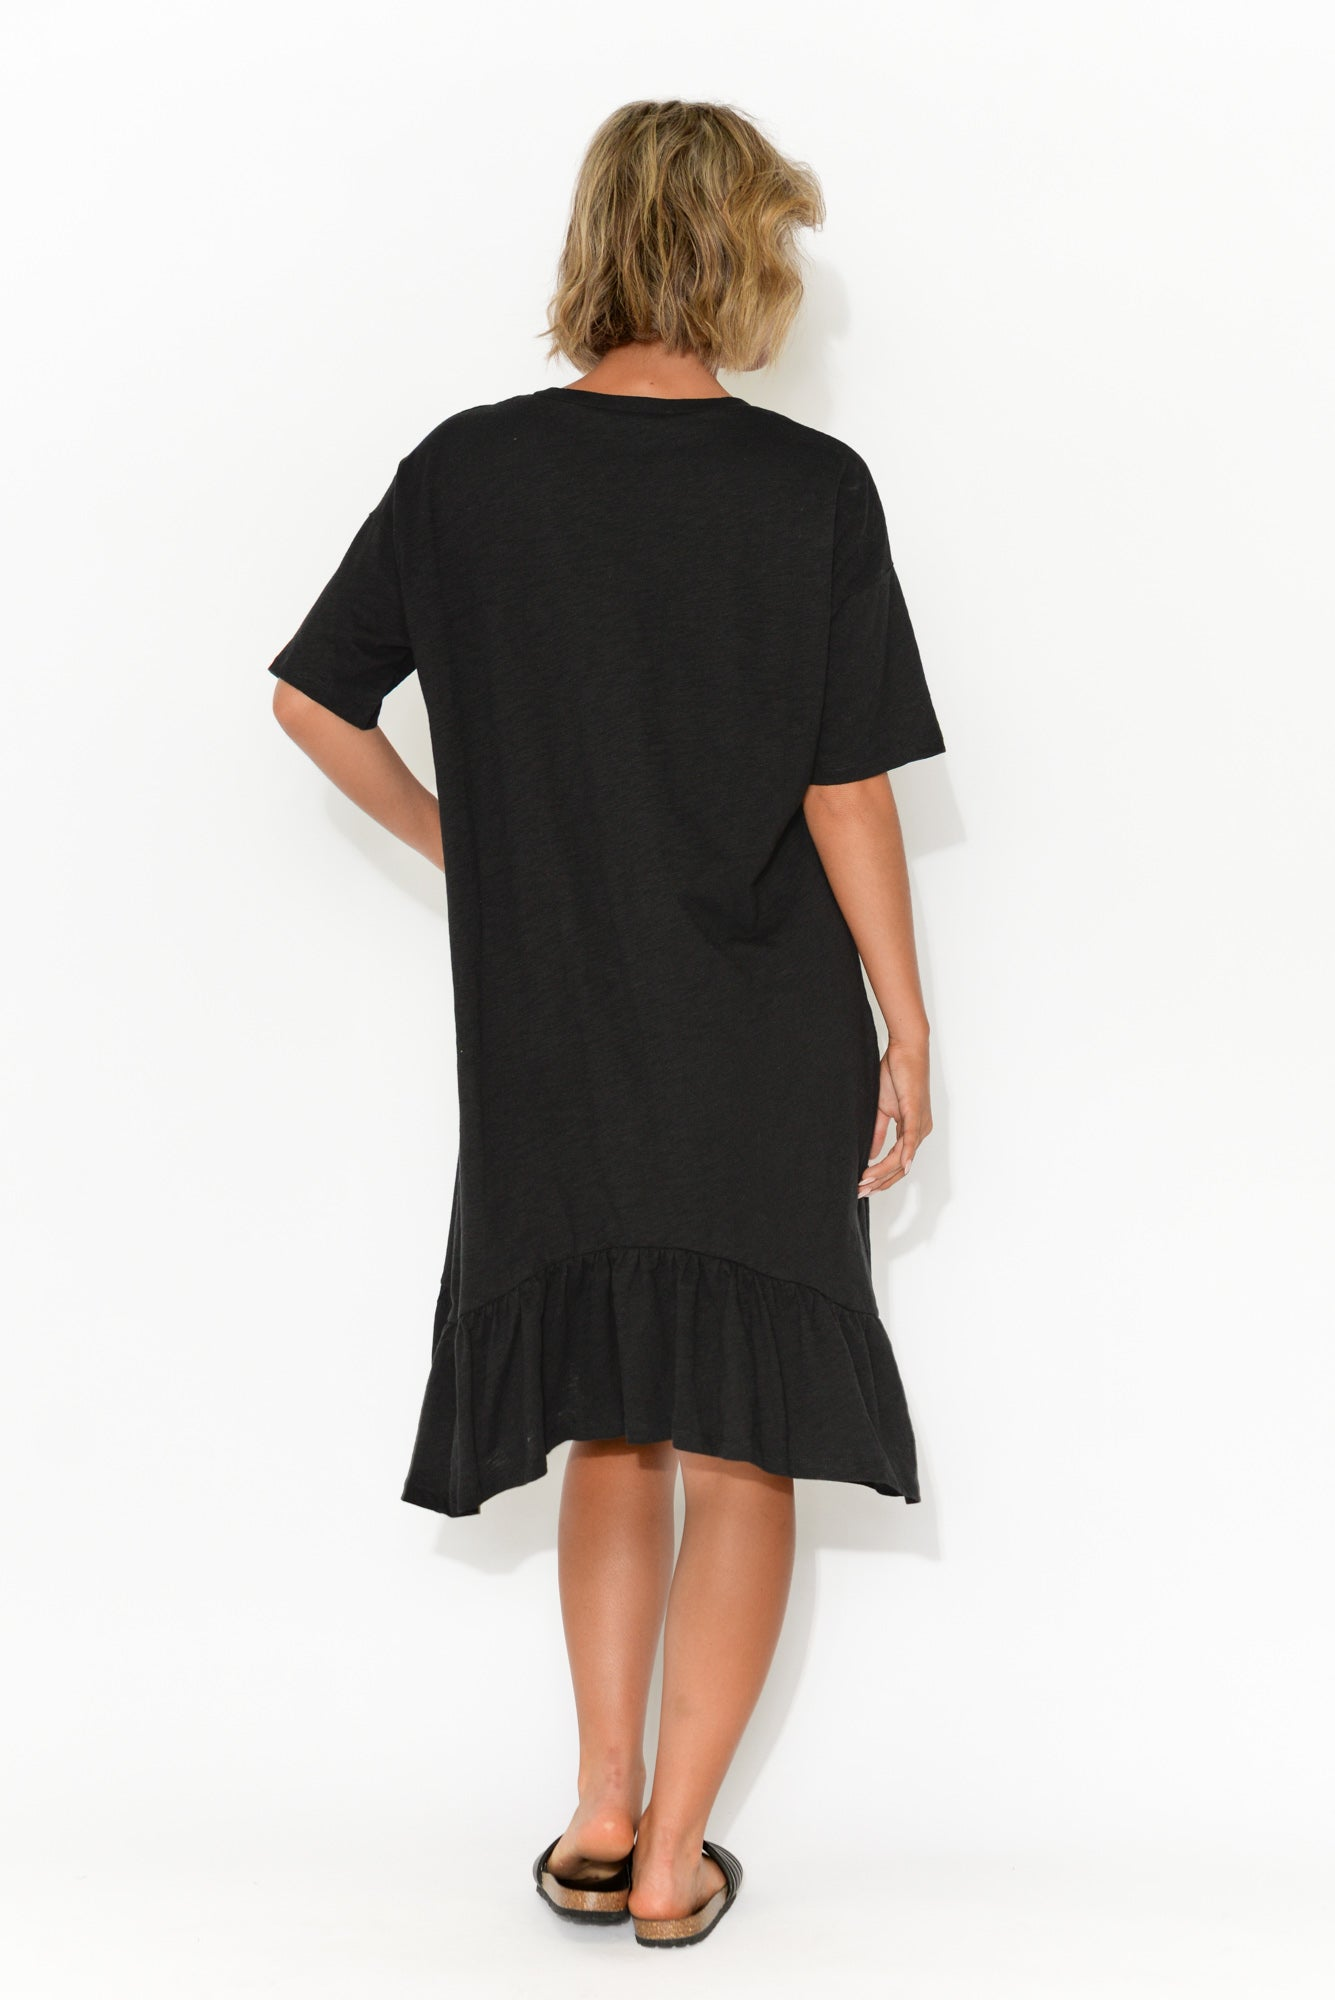 Goldie Black Frill Dress